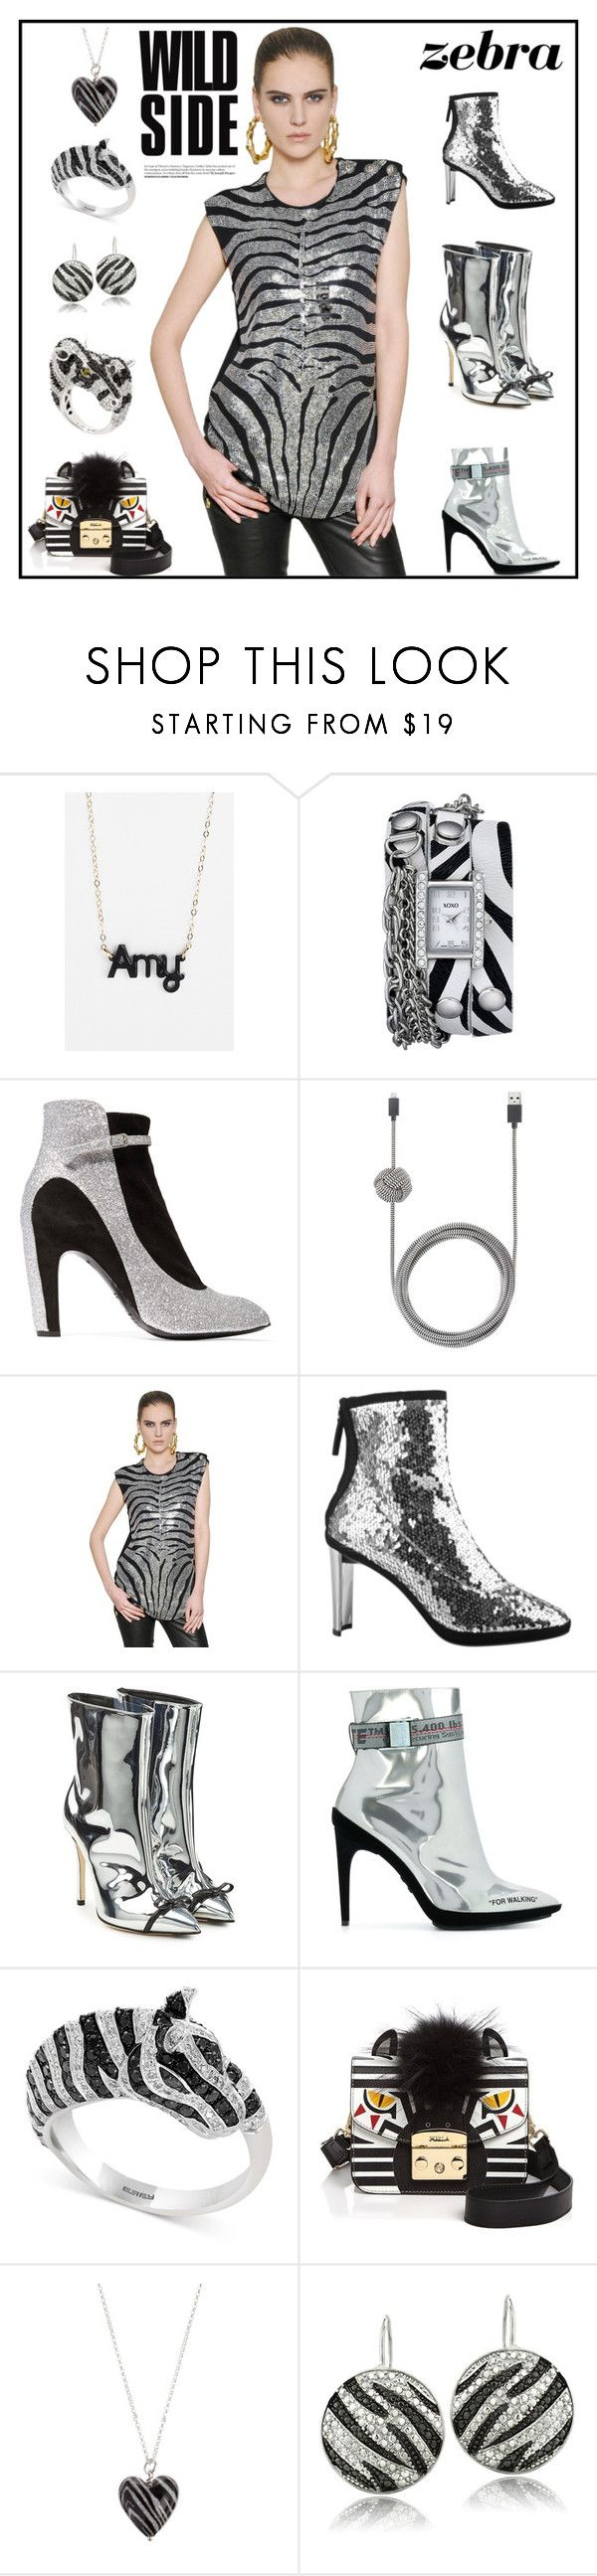 """Madagascar Zebra Marty"" by yours-styling-best-friend ❤ liked on Polyvore featuring beauty, Moon and Lola, XOXO, Maison Margiela, Native Union, Balmain, Giuseppe Zanotti, Marco de Vincenzo, Off-White and Effy Jewelry"